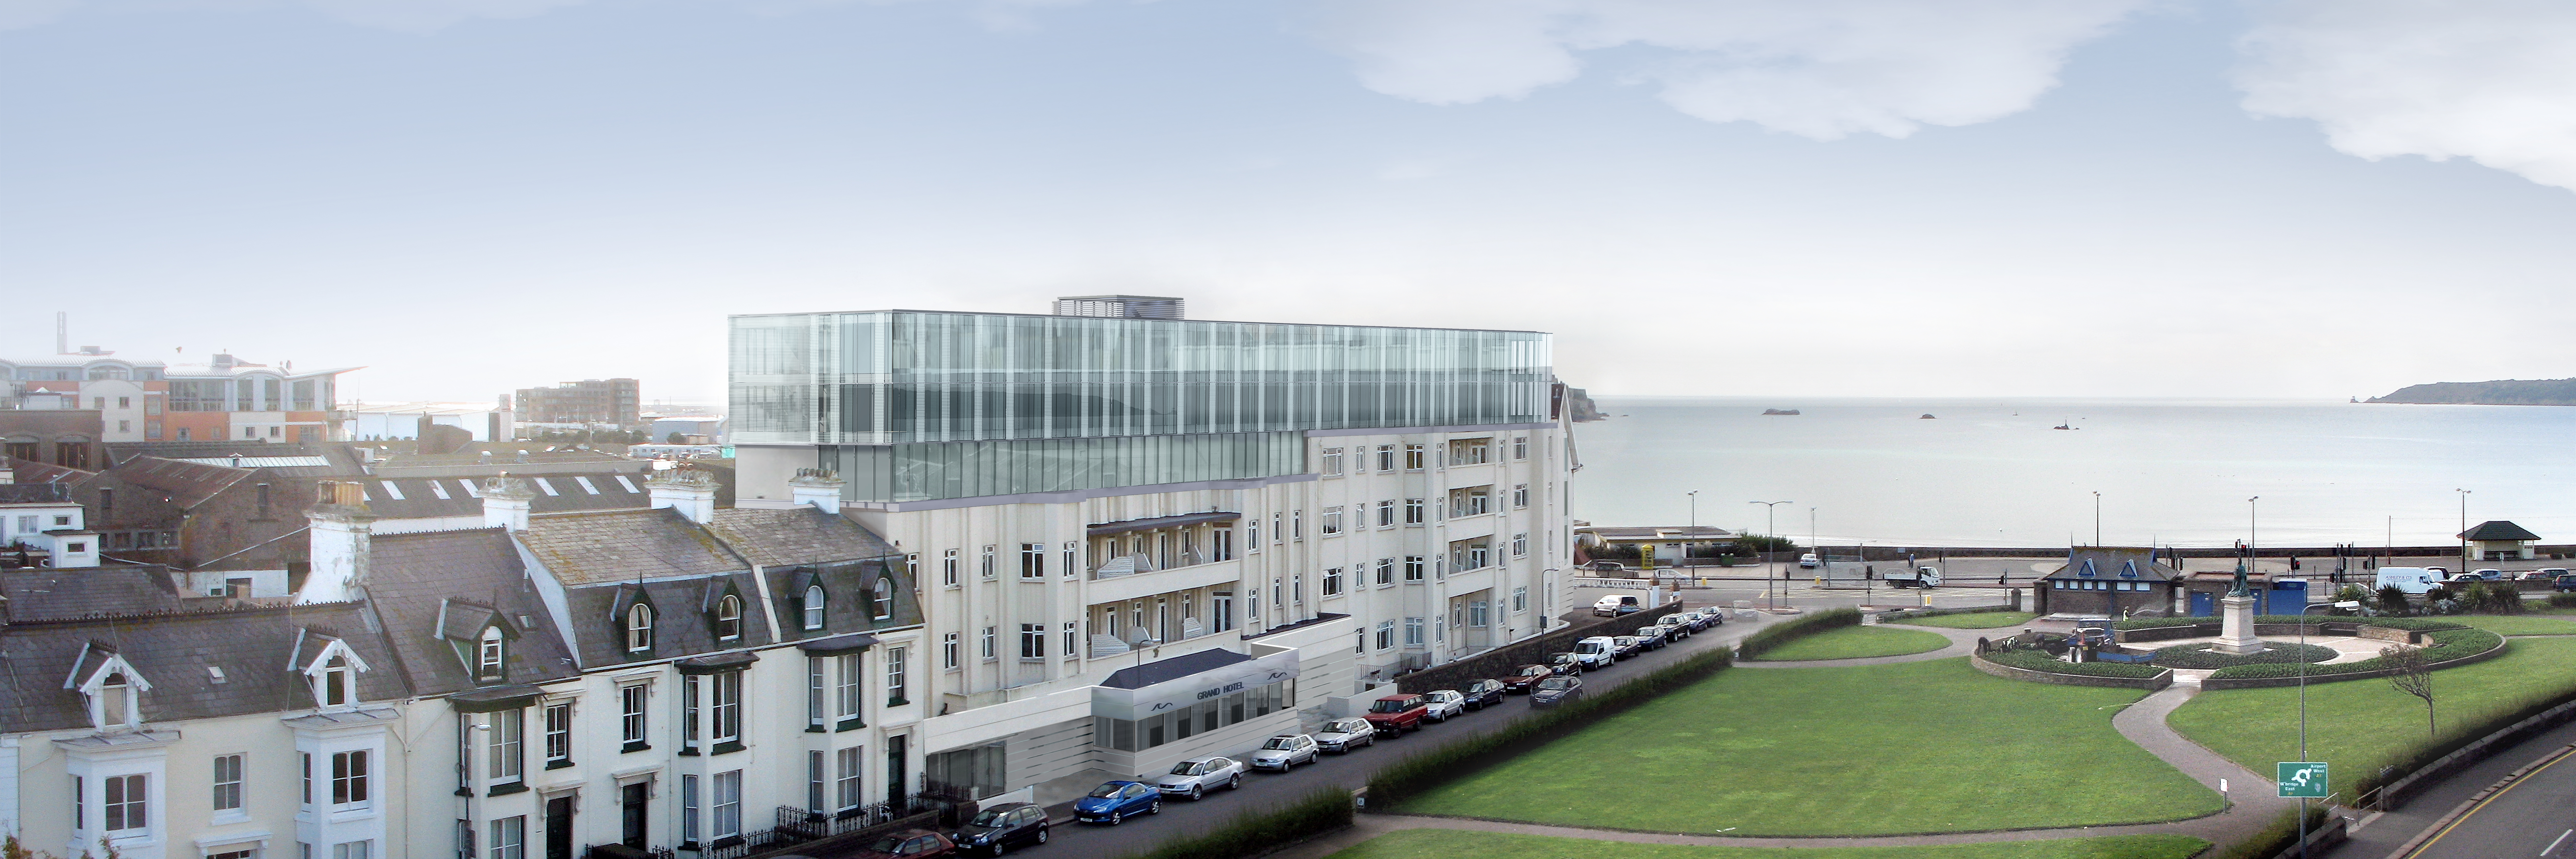 GRAND HOTEL EXTENSION | St. Helier, Jersey | Axis Mason